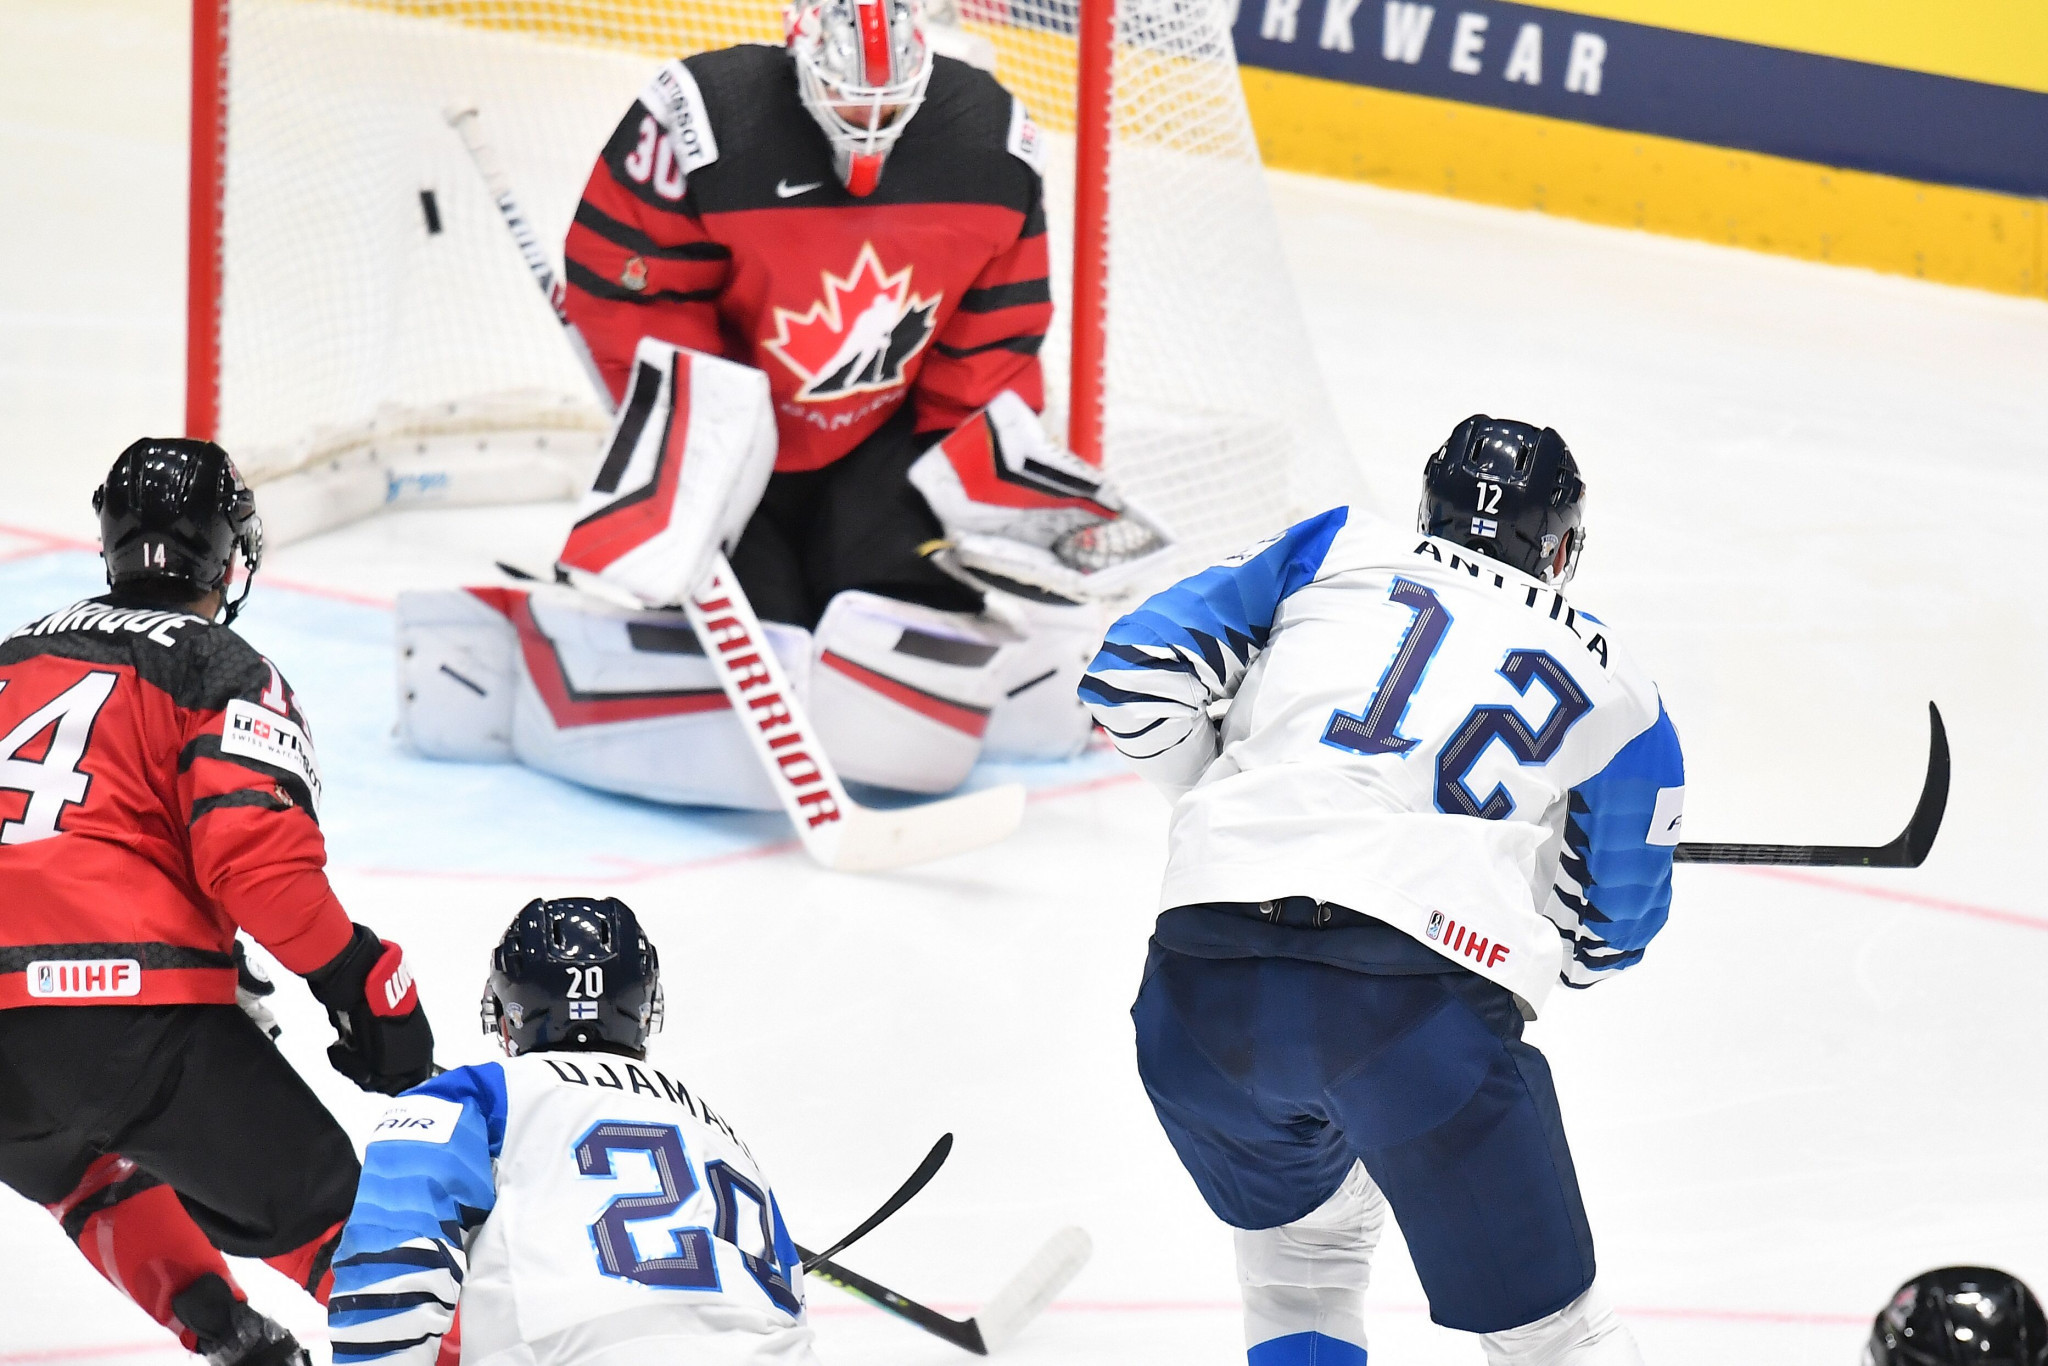 Marko Anttila scored two for Finland in their victory against Canada in the IIHF World Championship ©Getty Images